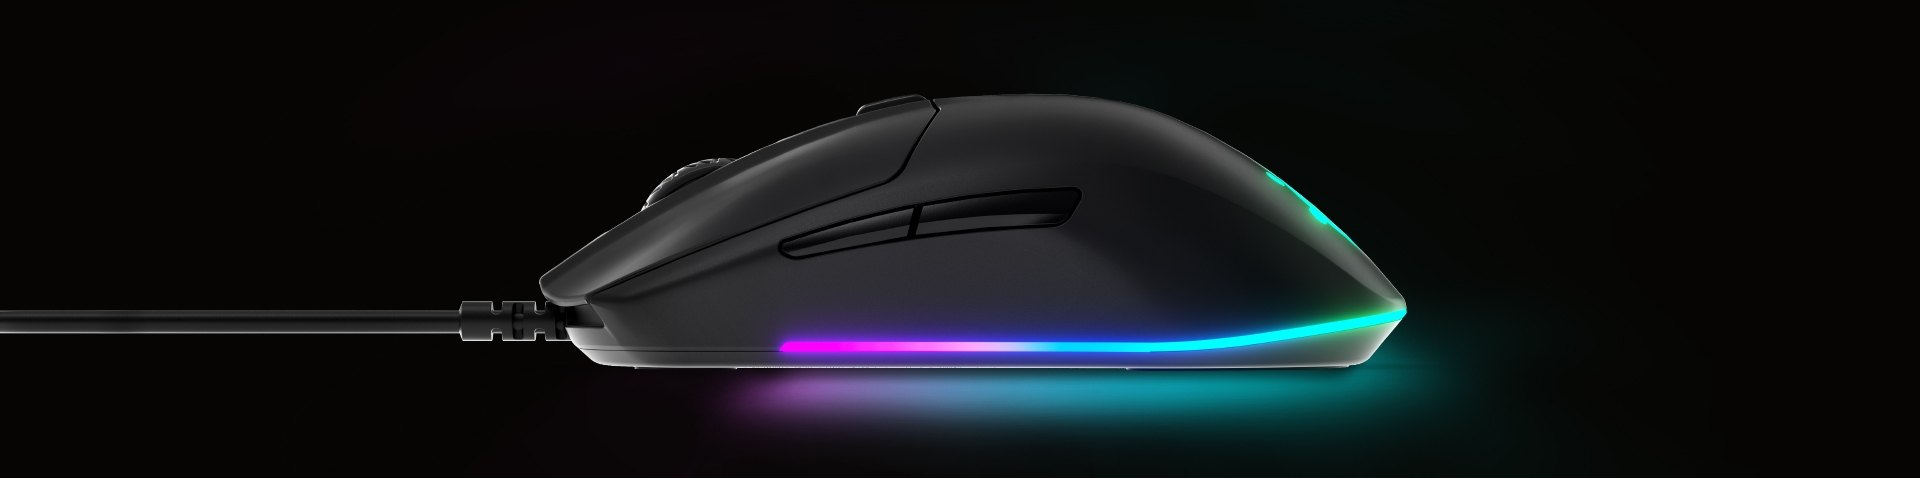 SteelSeries Rival mouse from an side profile angle